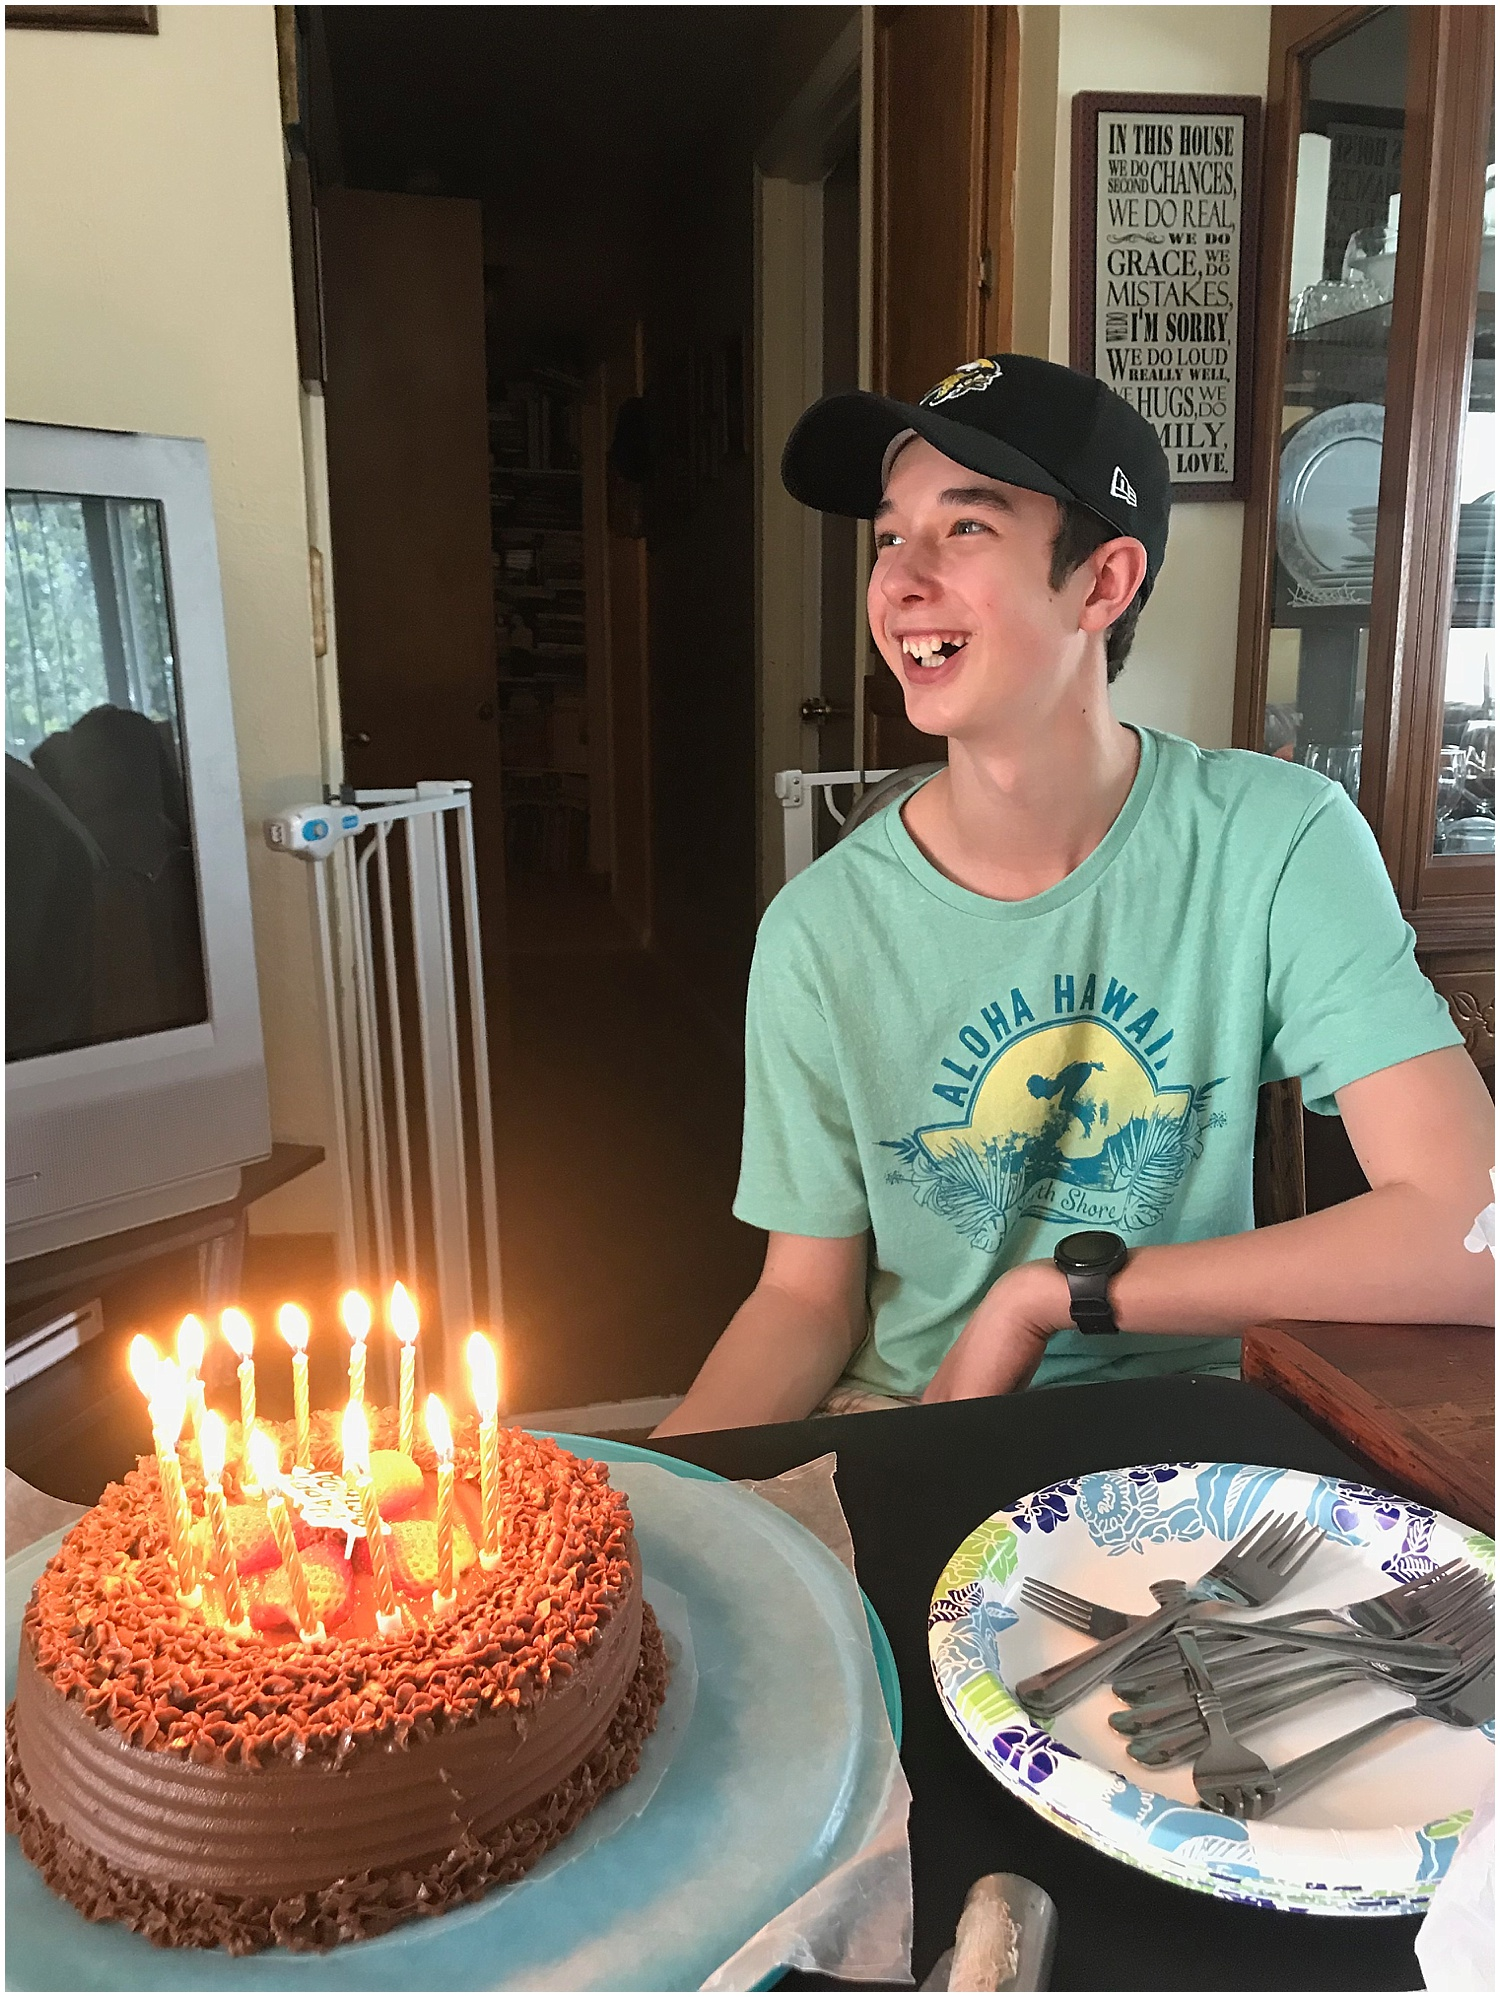 celebrated my nephews 14th bday… wow time goes by fast!